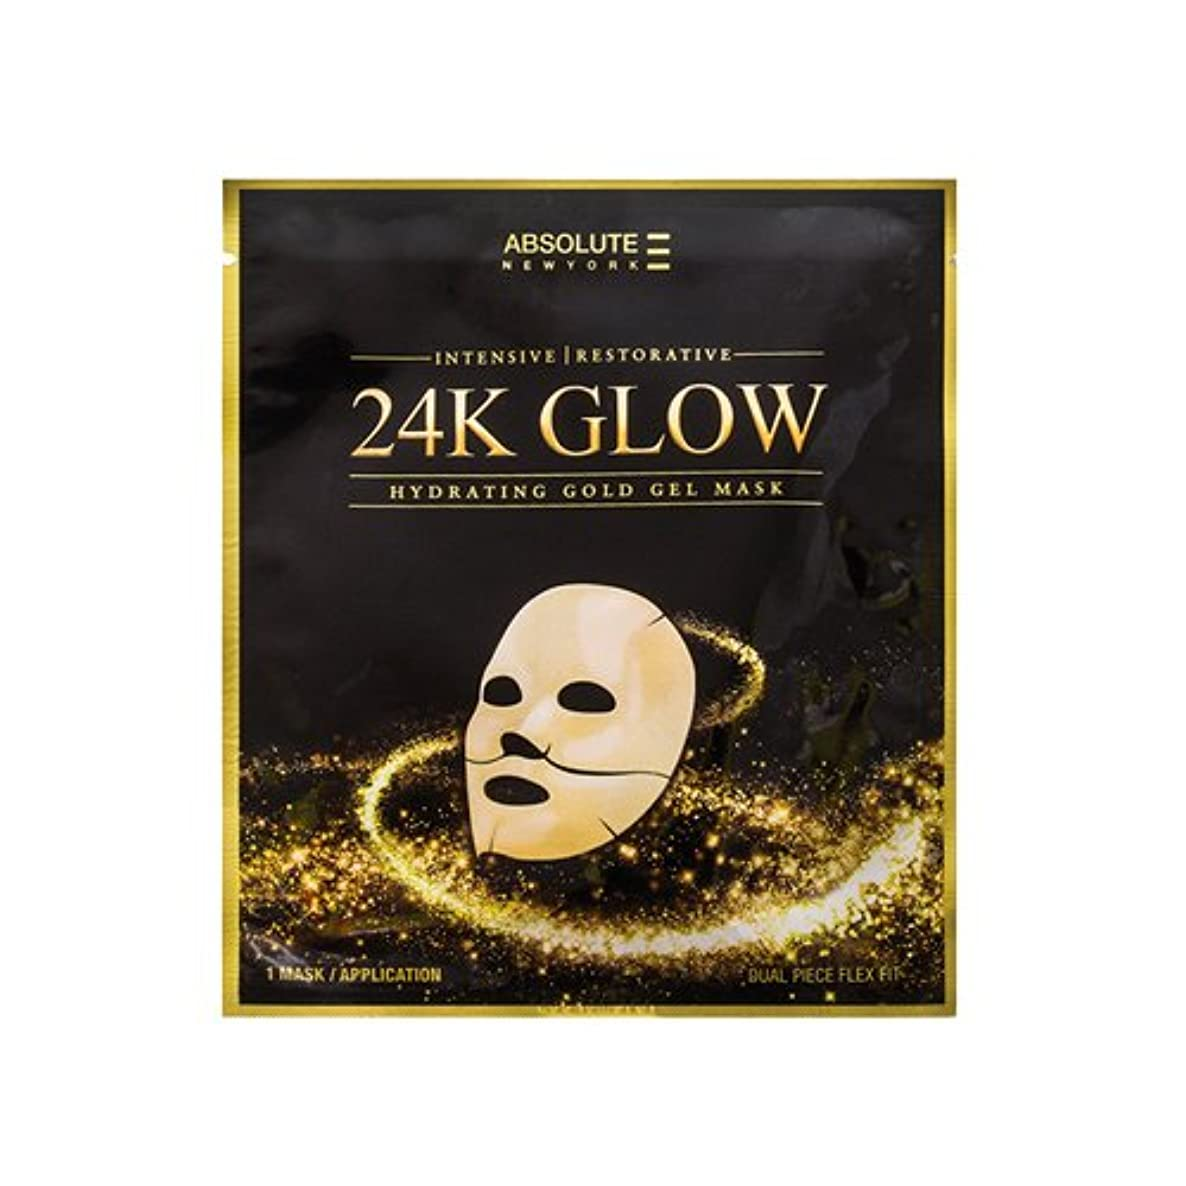 蒸留料理権限(3 Pack) Absolute 24K Glow Gold Gel Mask (並行輸入品)